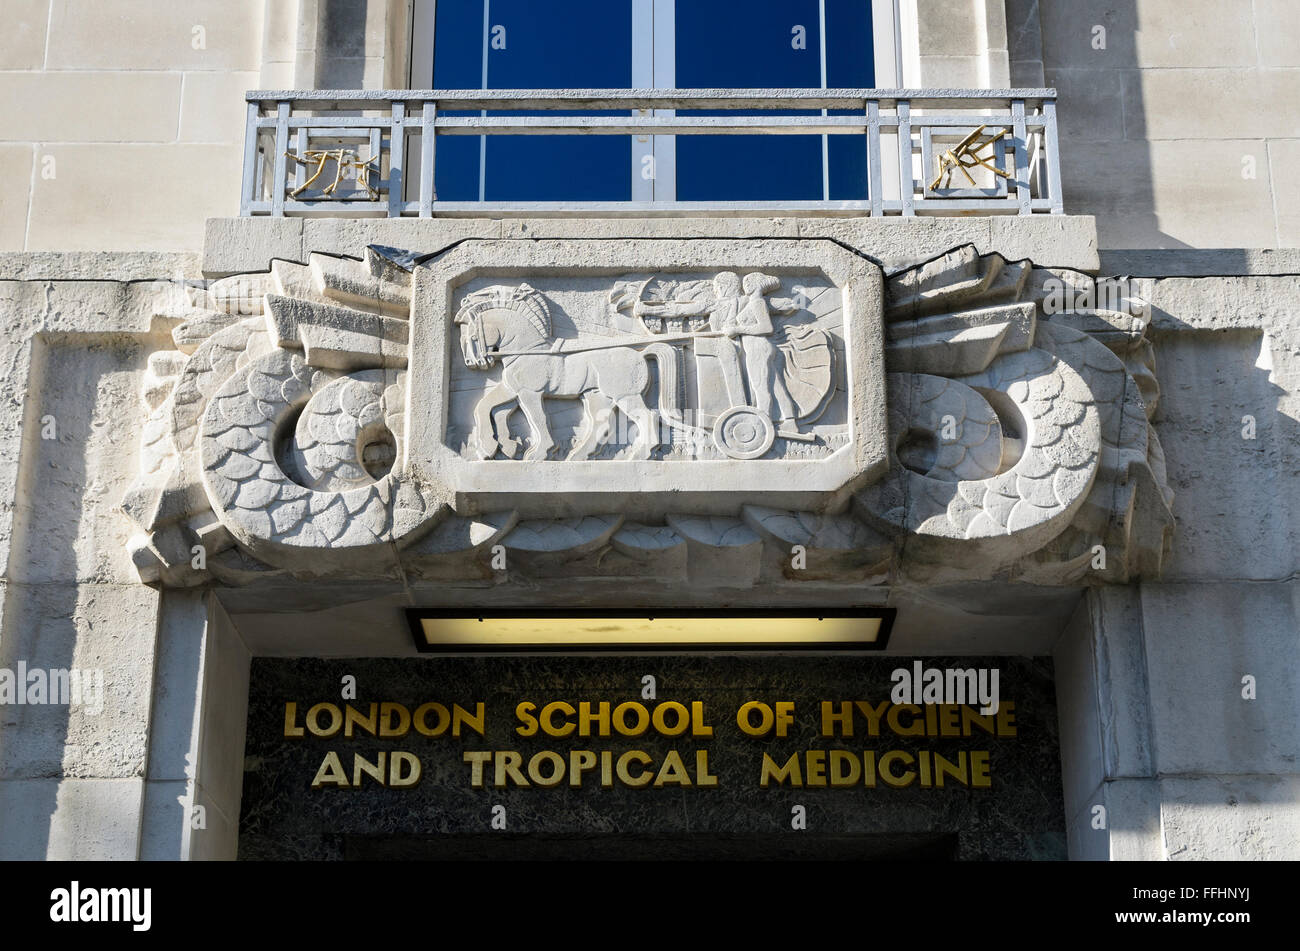 London School of Hygiene and Tropical Medicine, Keppel St, London, WC1E 7HT. - Stock Image